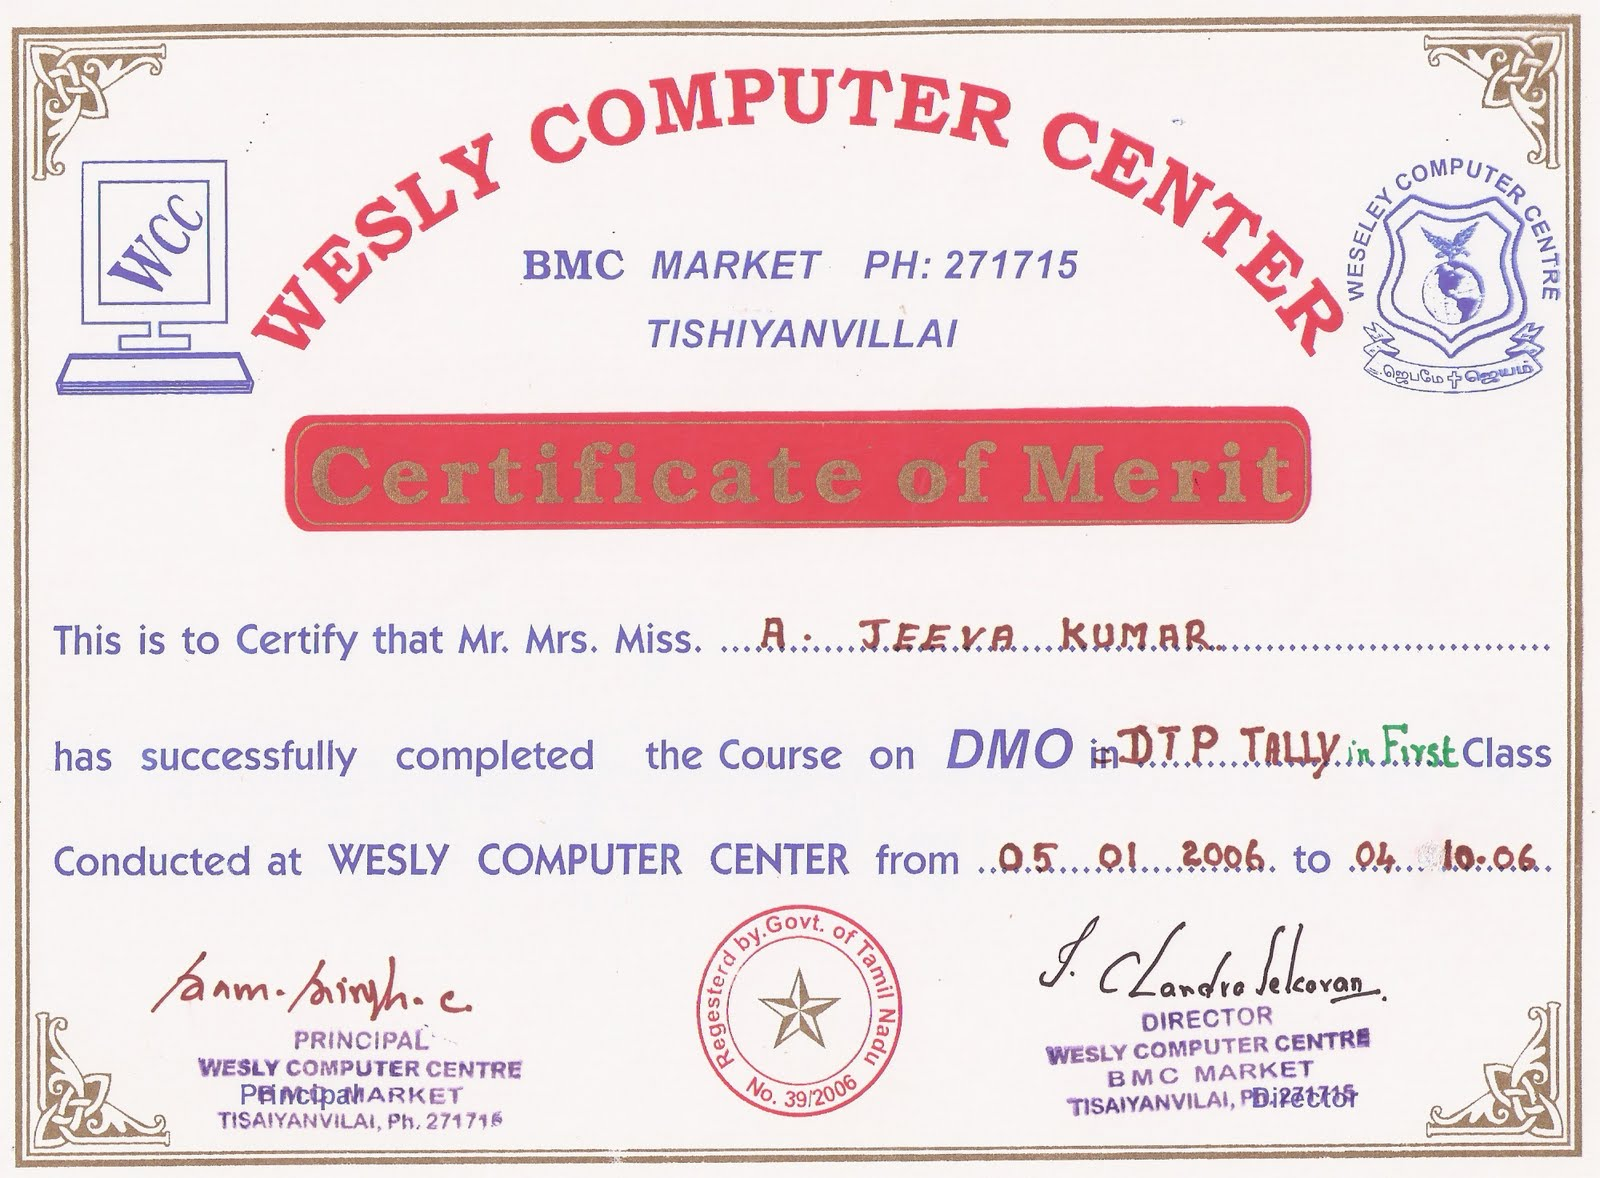 Computer Course Completion Certificate Sample  Computer Course Completion Certificate Format